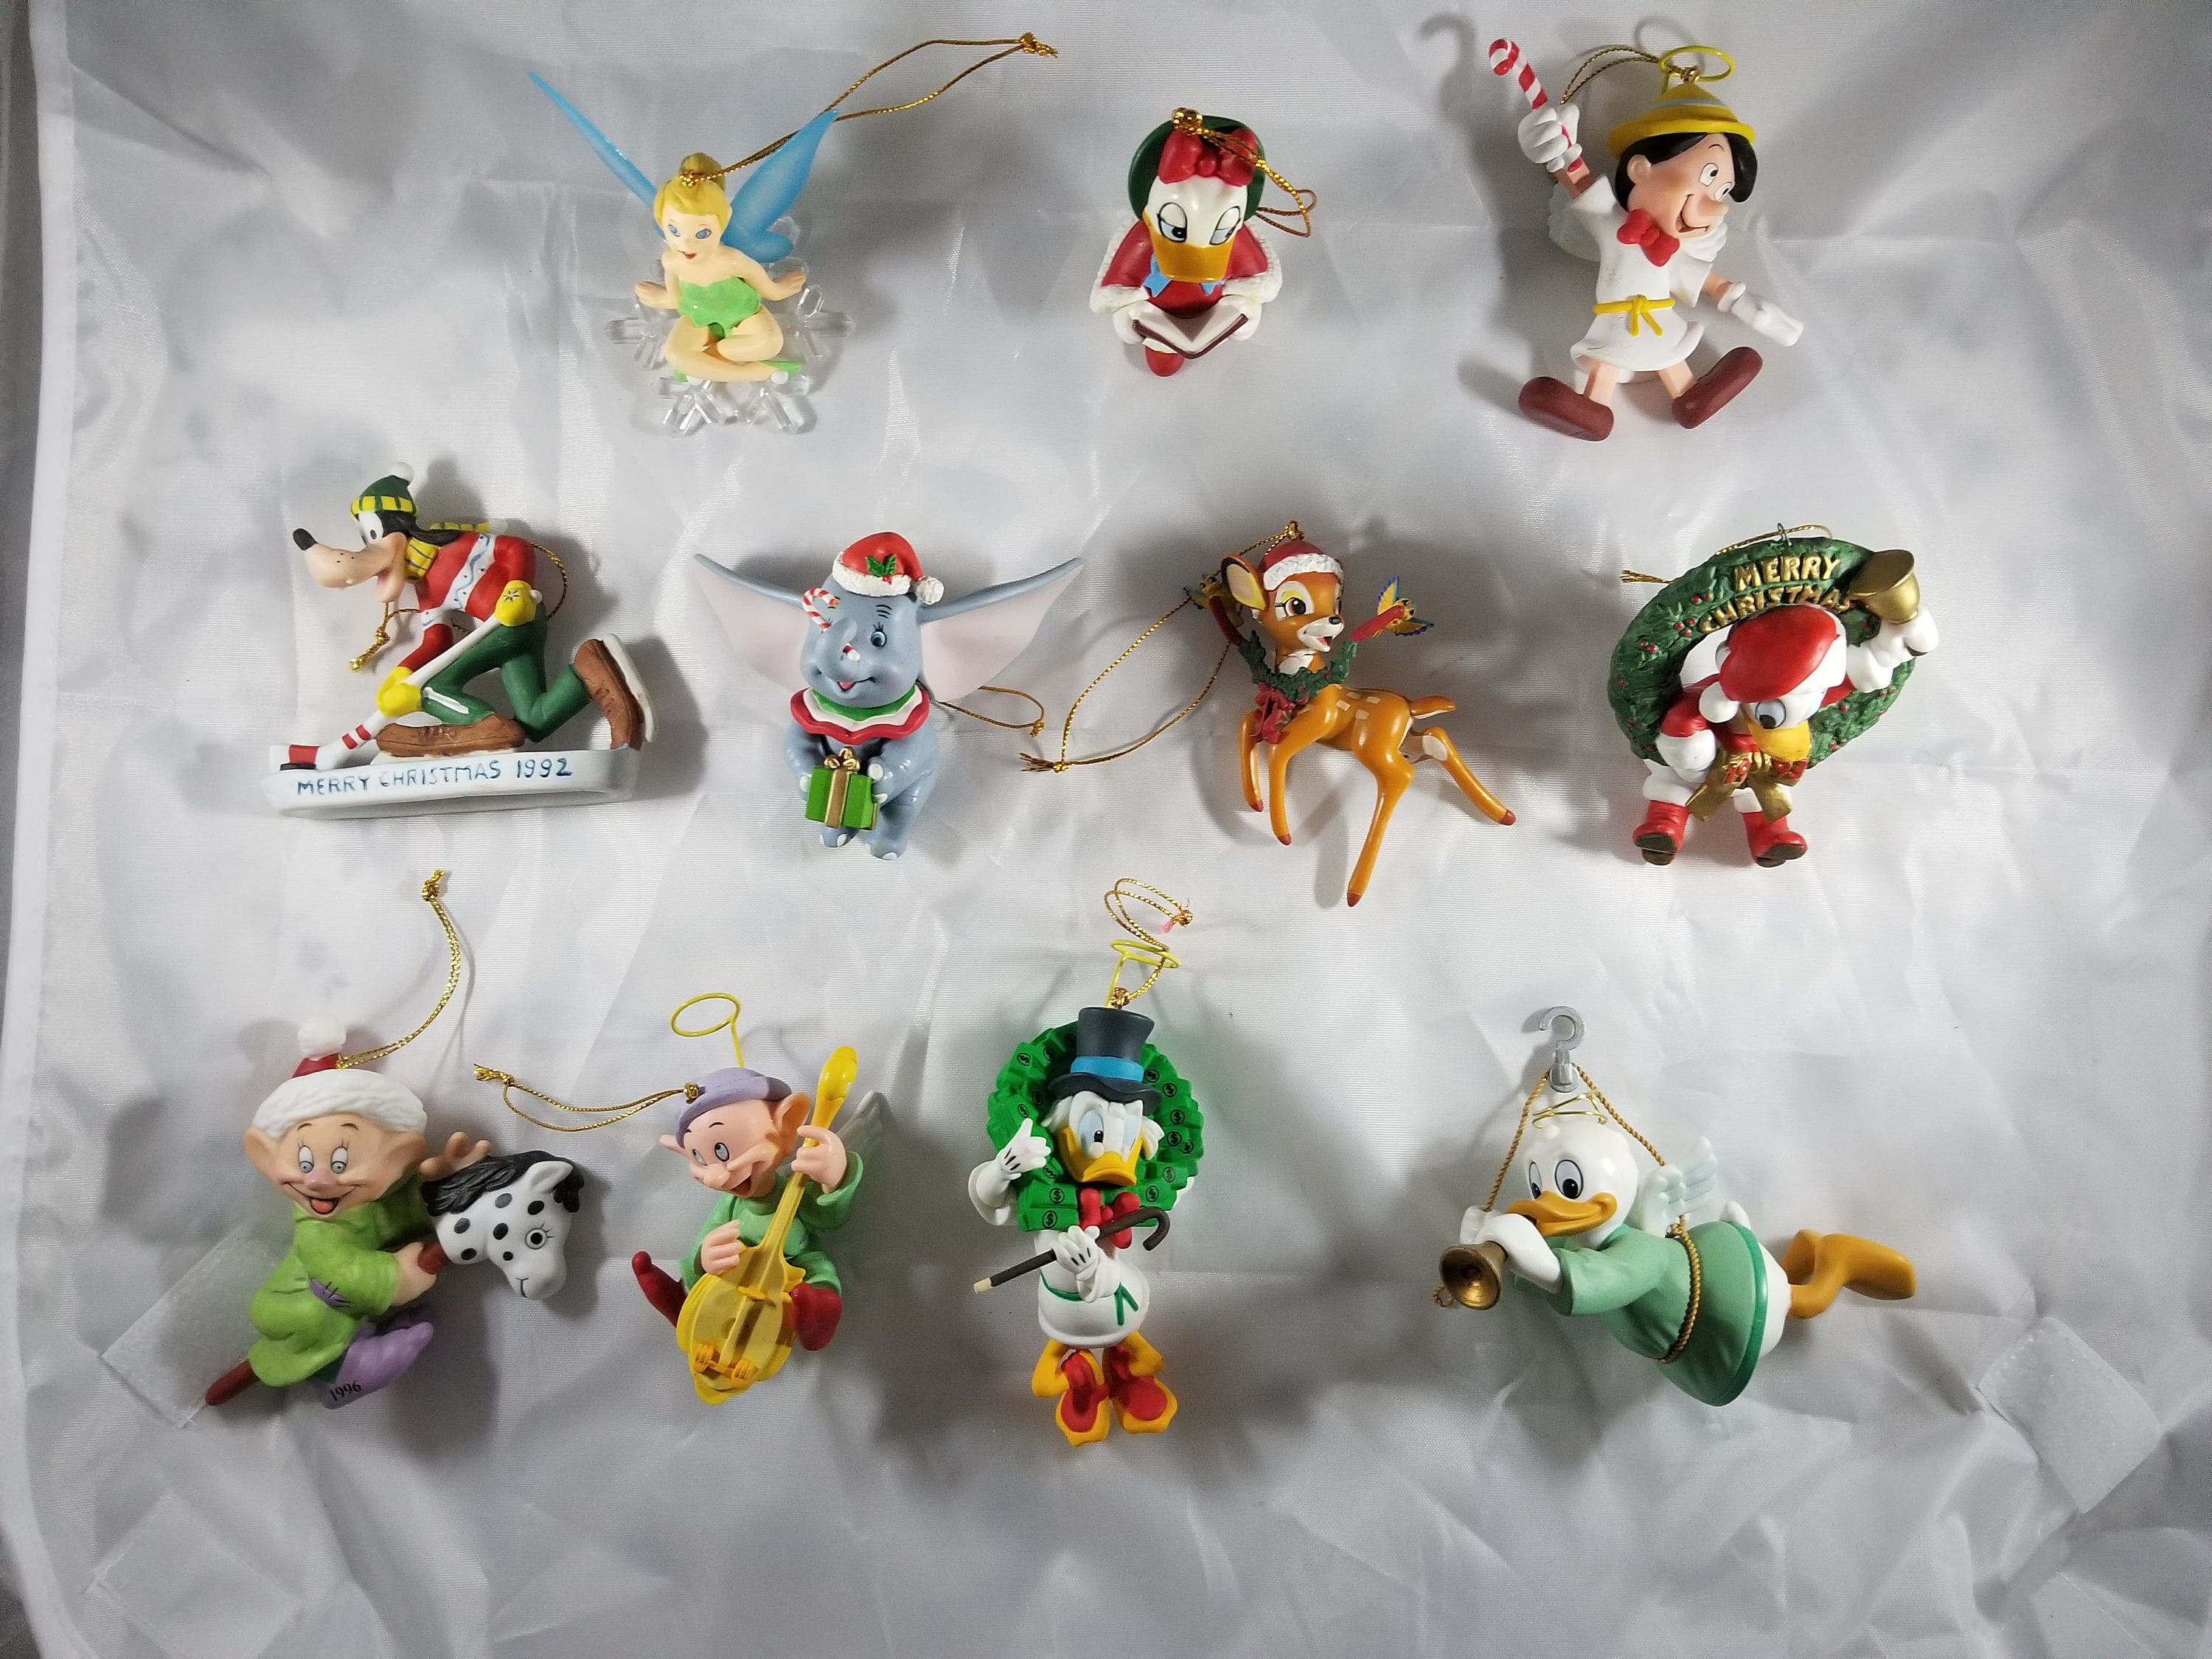 Eleven Vintage Disney Christmas Ornaments From The 90s By Jksarray On Etsy Christmas Ornaments Disney Christmas Disney Christmas Ornaments